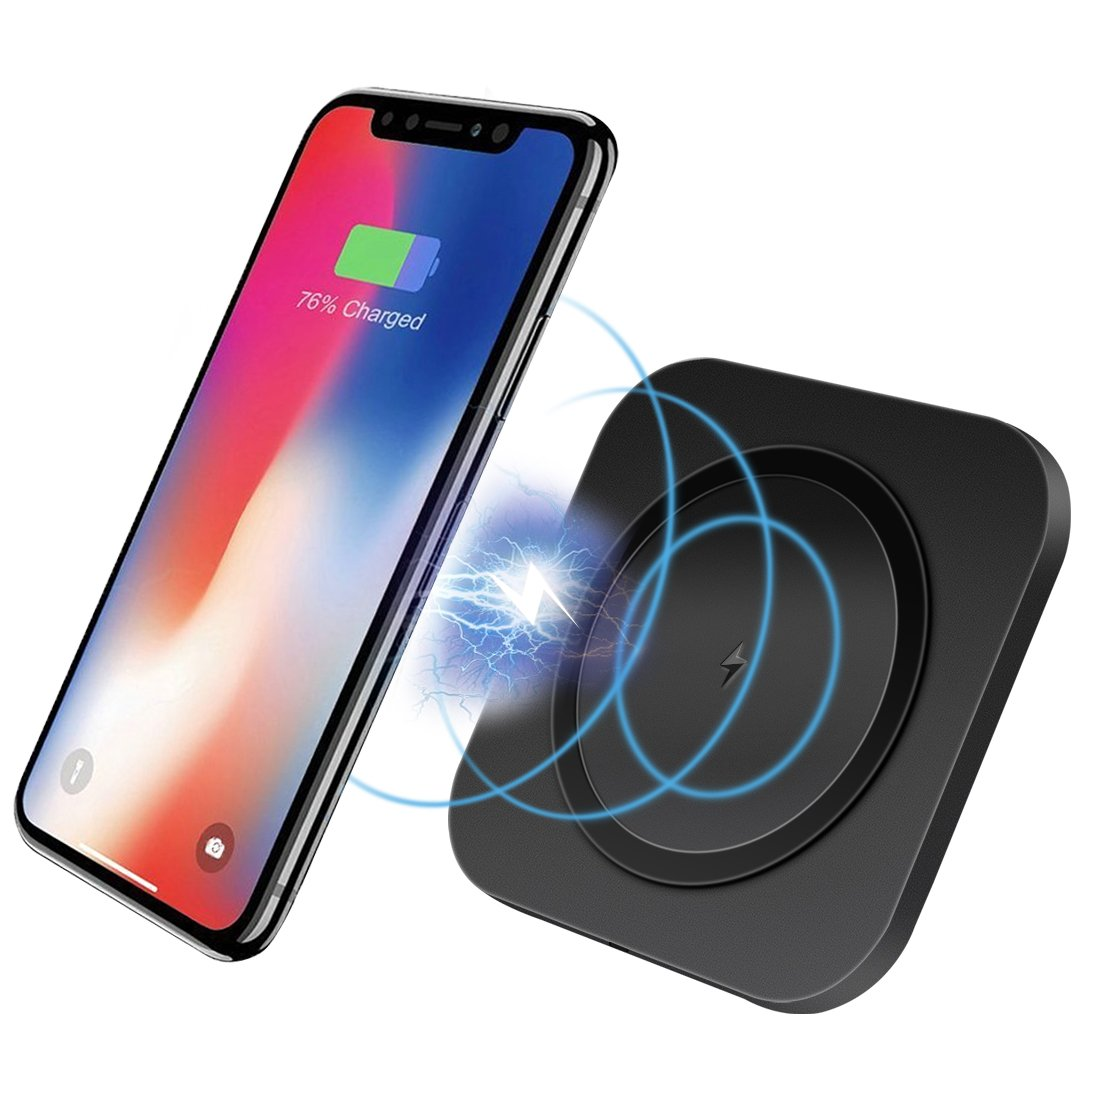 Wireless Charger - Pohopa Wireless Charging Pad with Anti-Slip Rubber for Apple iPhone X, iPhone 8 / 8 Plus, Samsung Galaxy S9 / S9+, Note 8 / S8 / S8 Plus, S7 / S7 Edge and More Qi-Enabled Devices ( Black ) W750